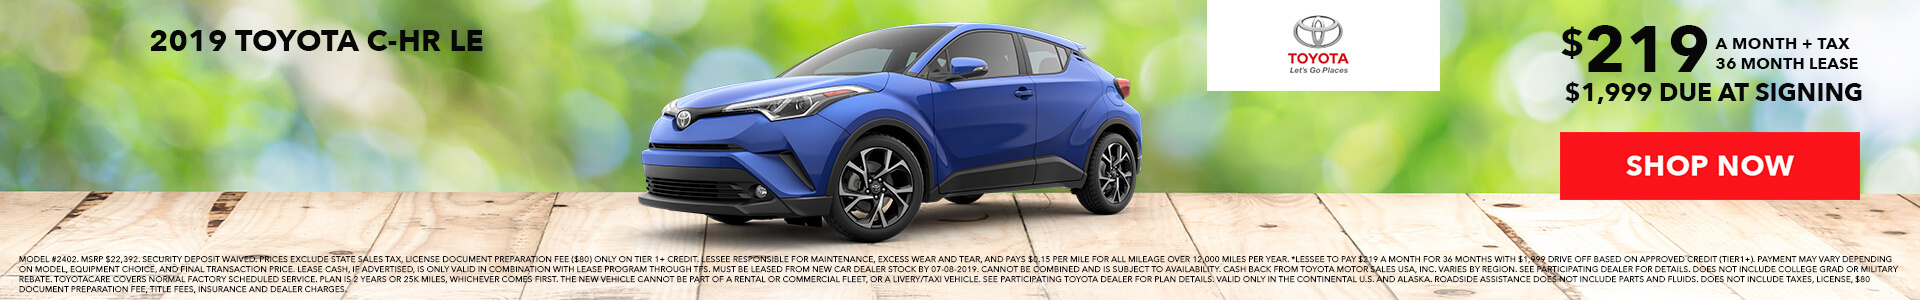 Toyota C-HR $219 Lease